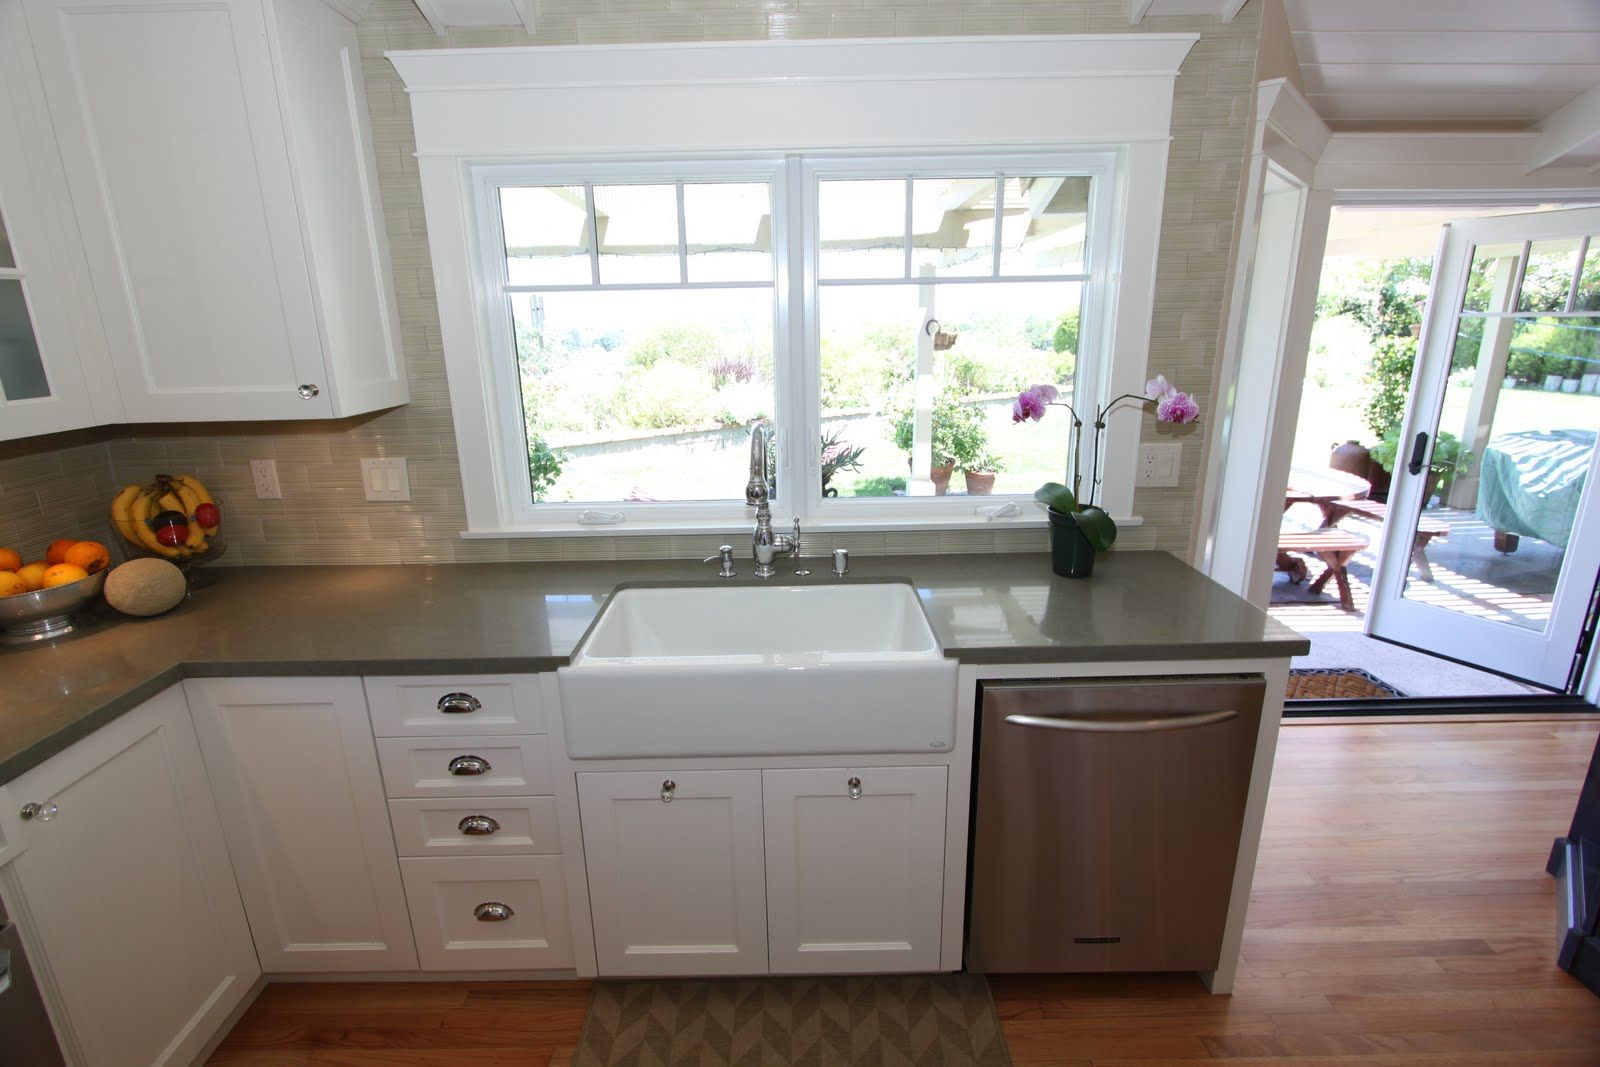 Blue Countertops White Cabinets Another Project Where I Specified Caeserstone Here We